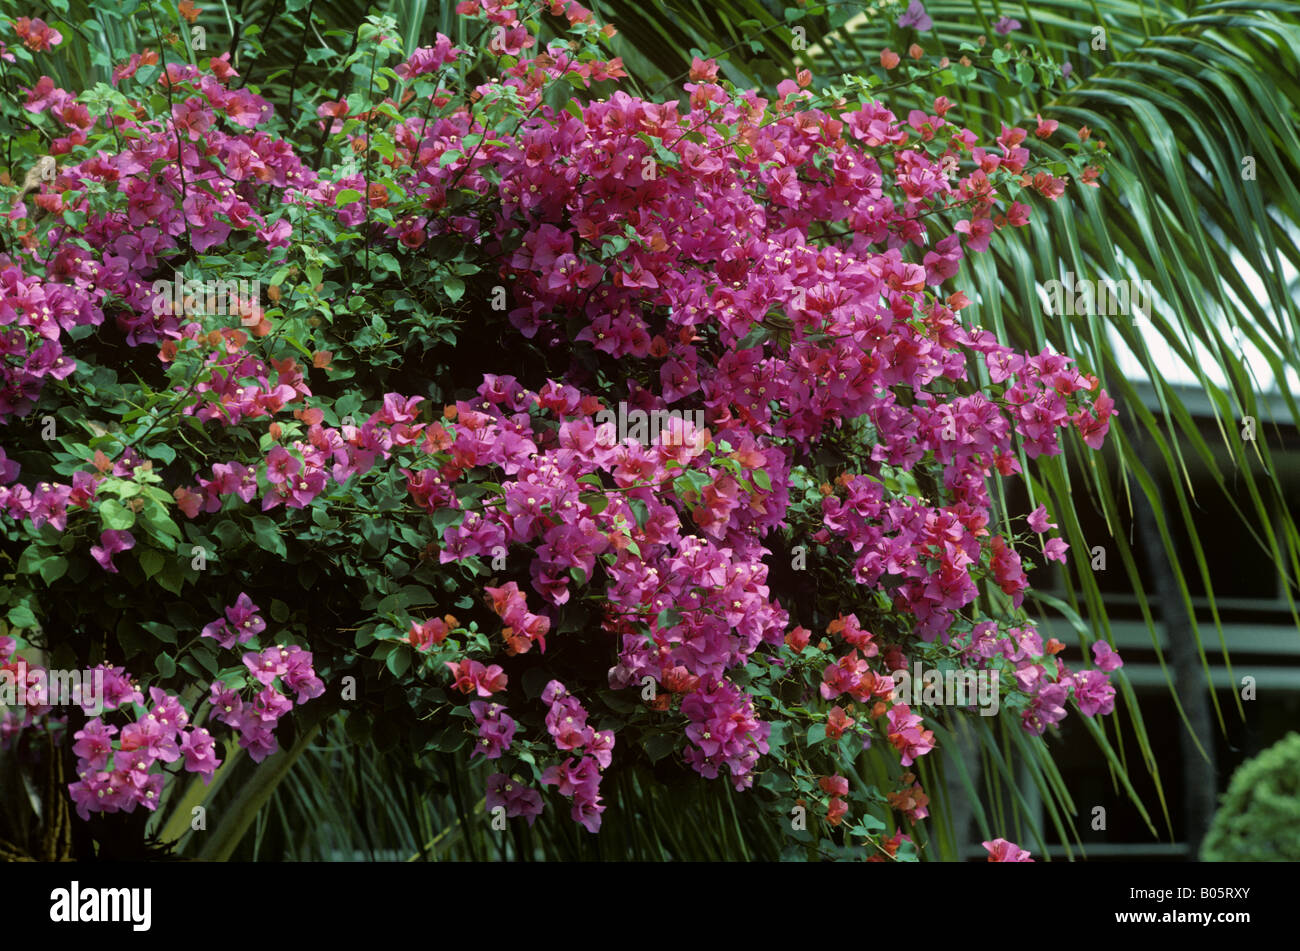 Heavily flowering pink Bougainvillea plant Mindanao Philippines - Stock Image